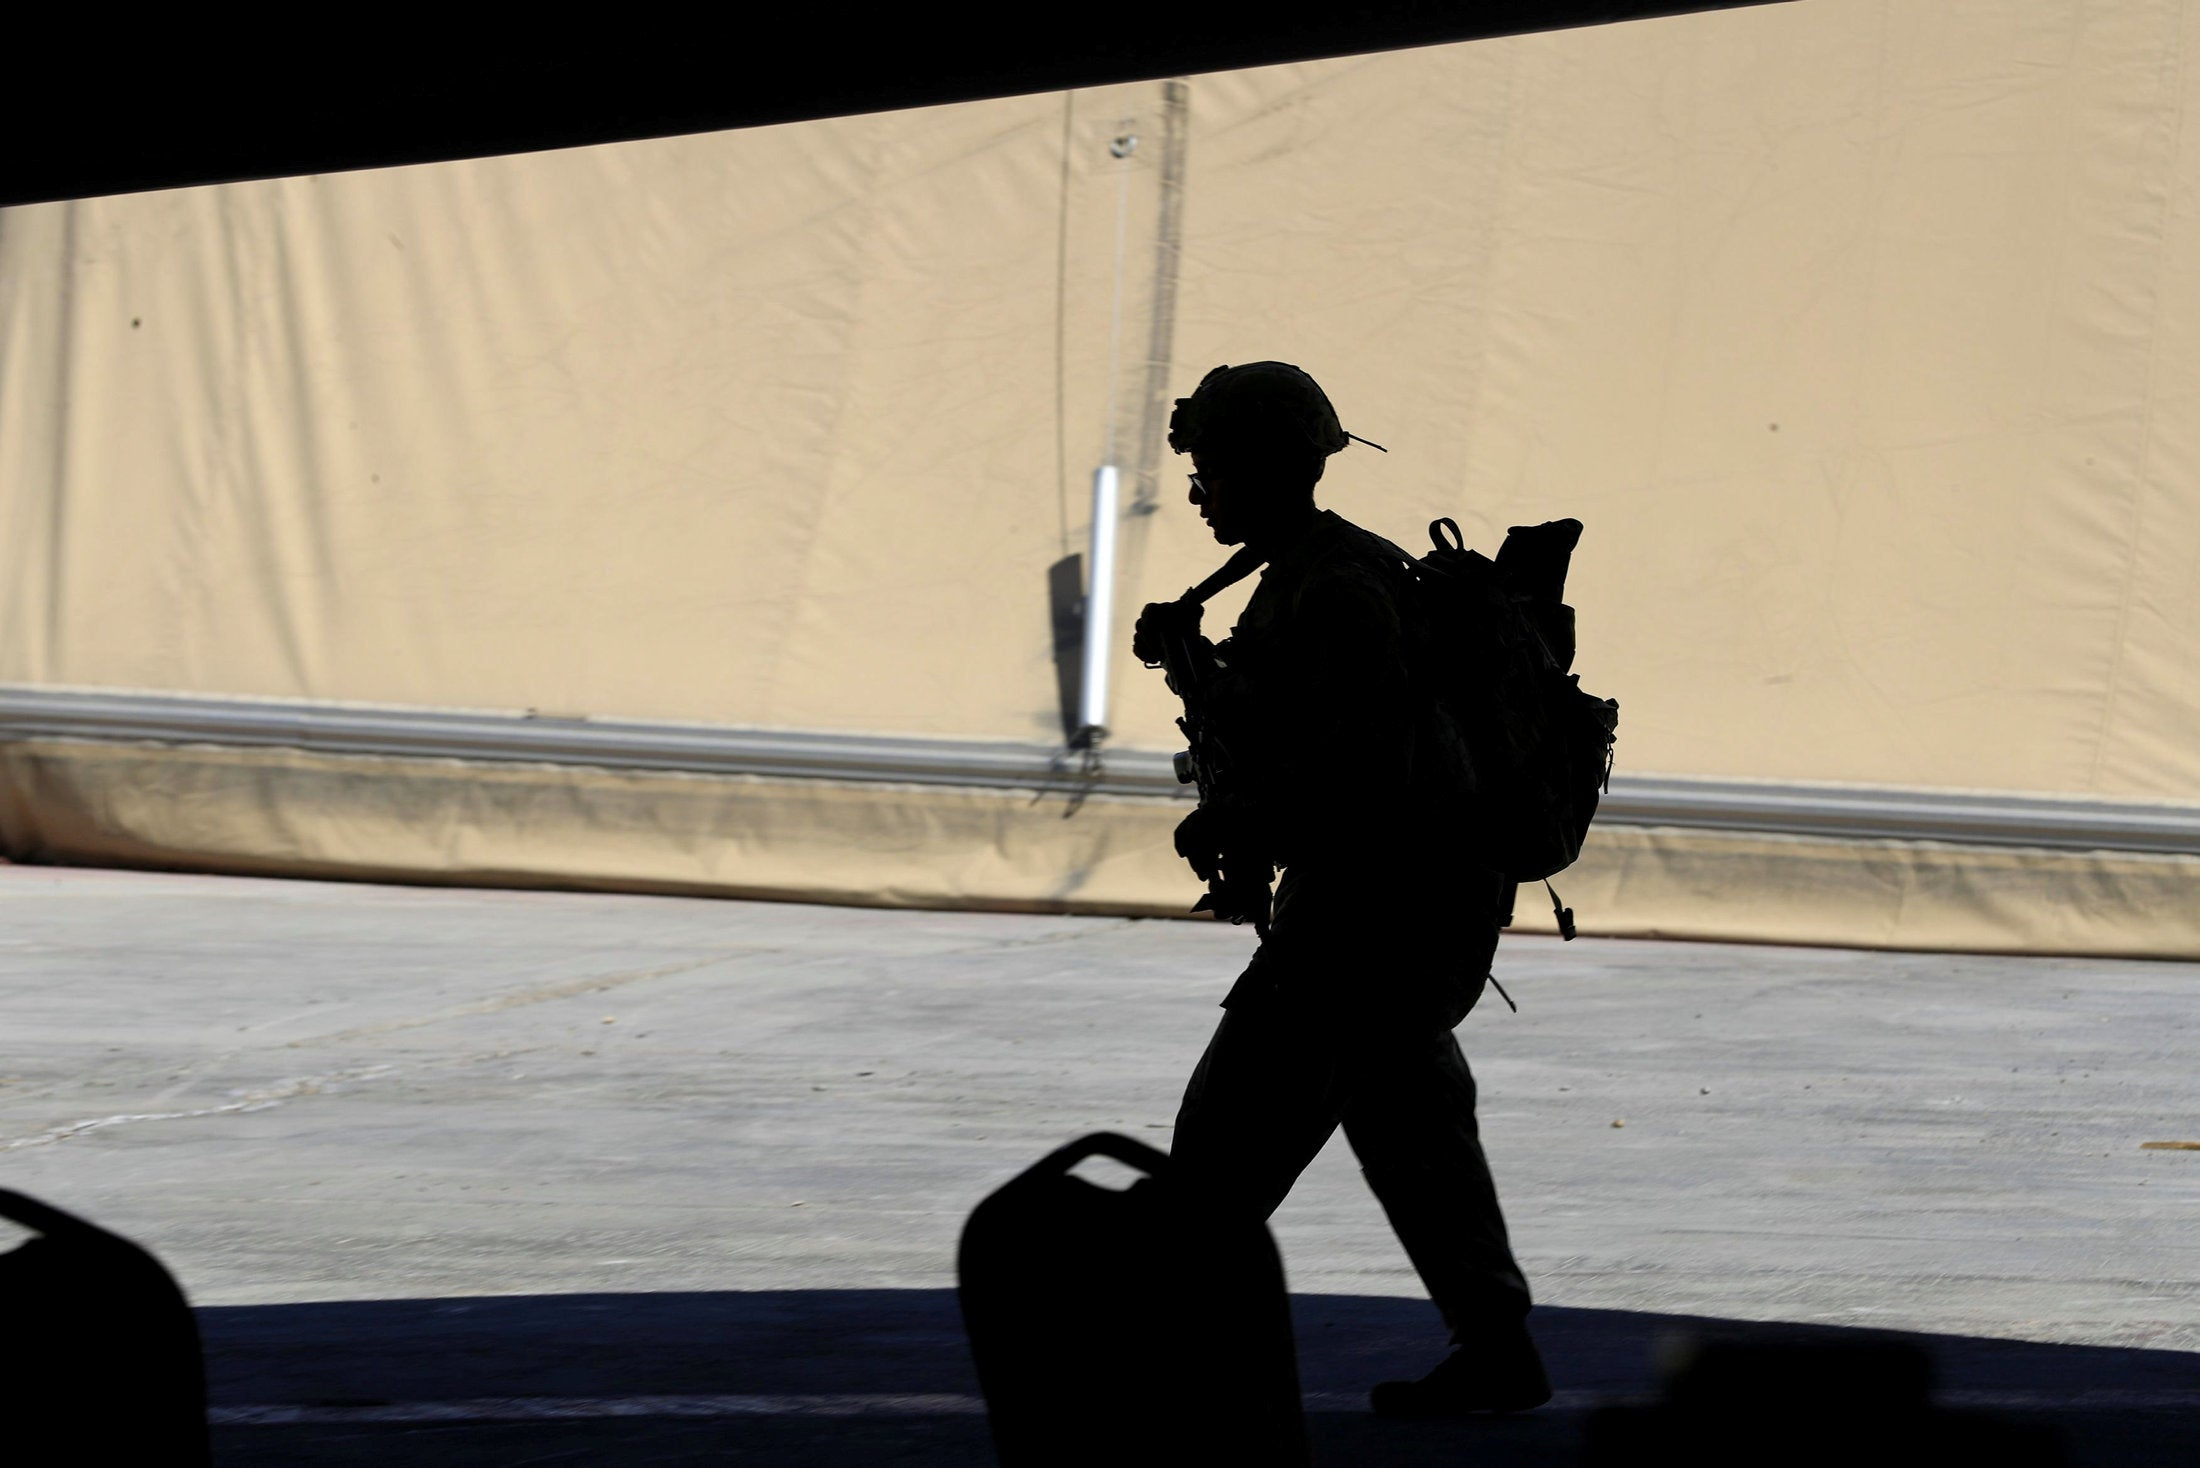 A soldier on a U.S. base north of Baghdad, August 2020.